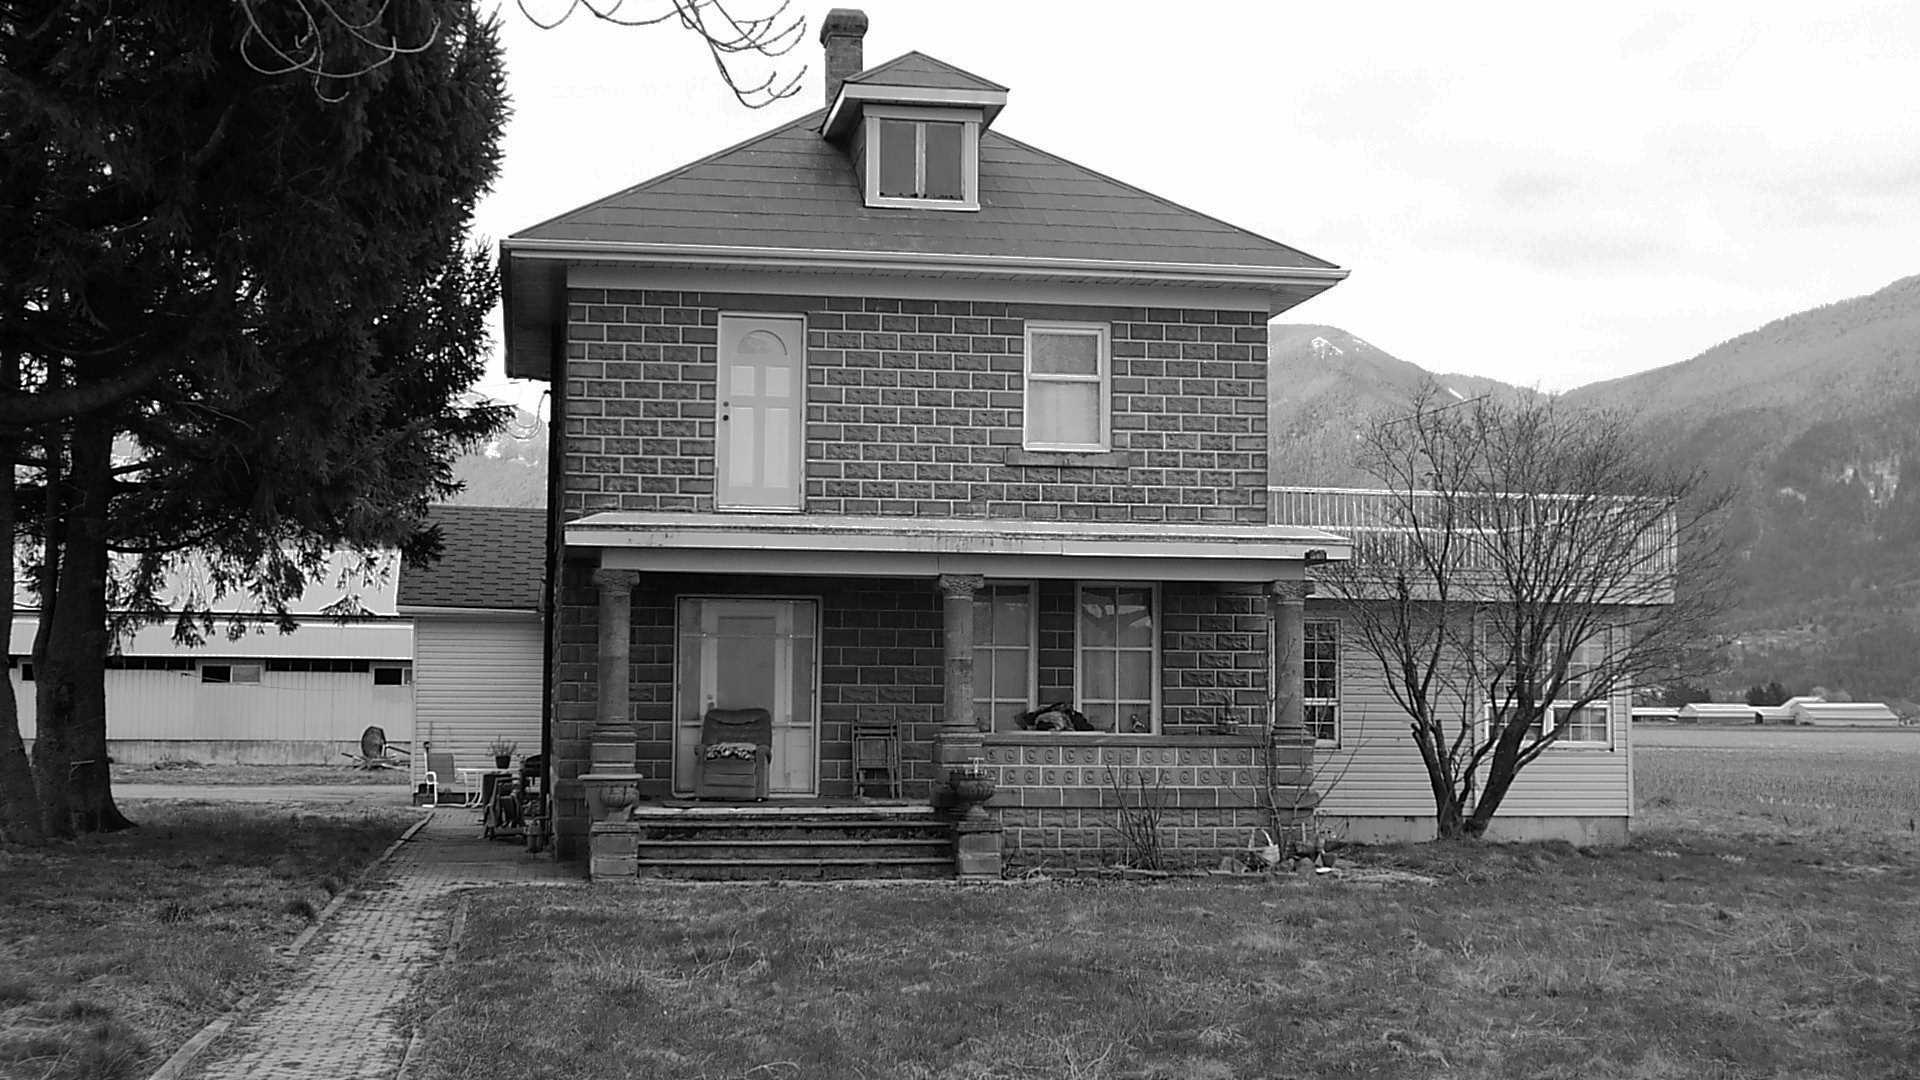 The royal hotel chilliwack blog concrete block houses for Concrete block construction homes